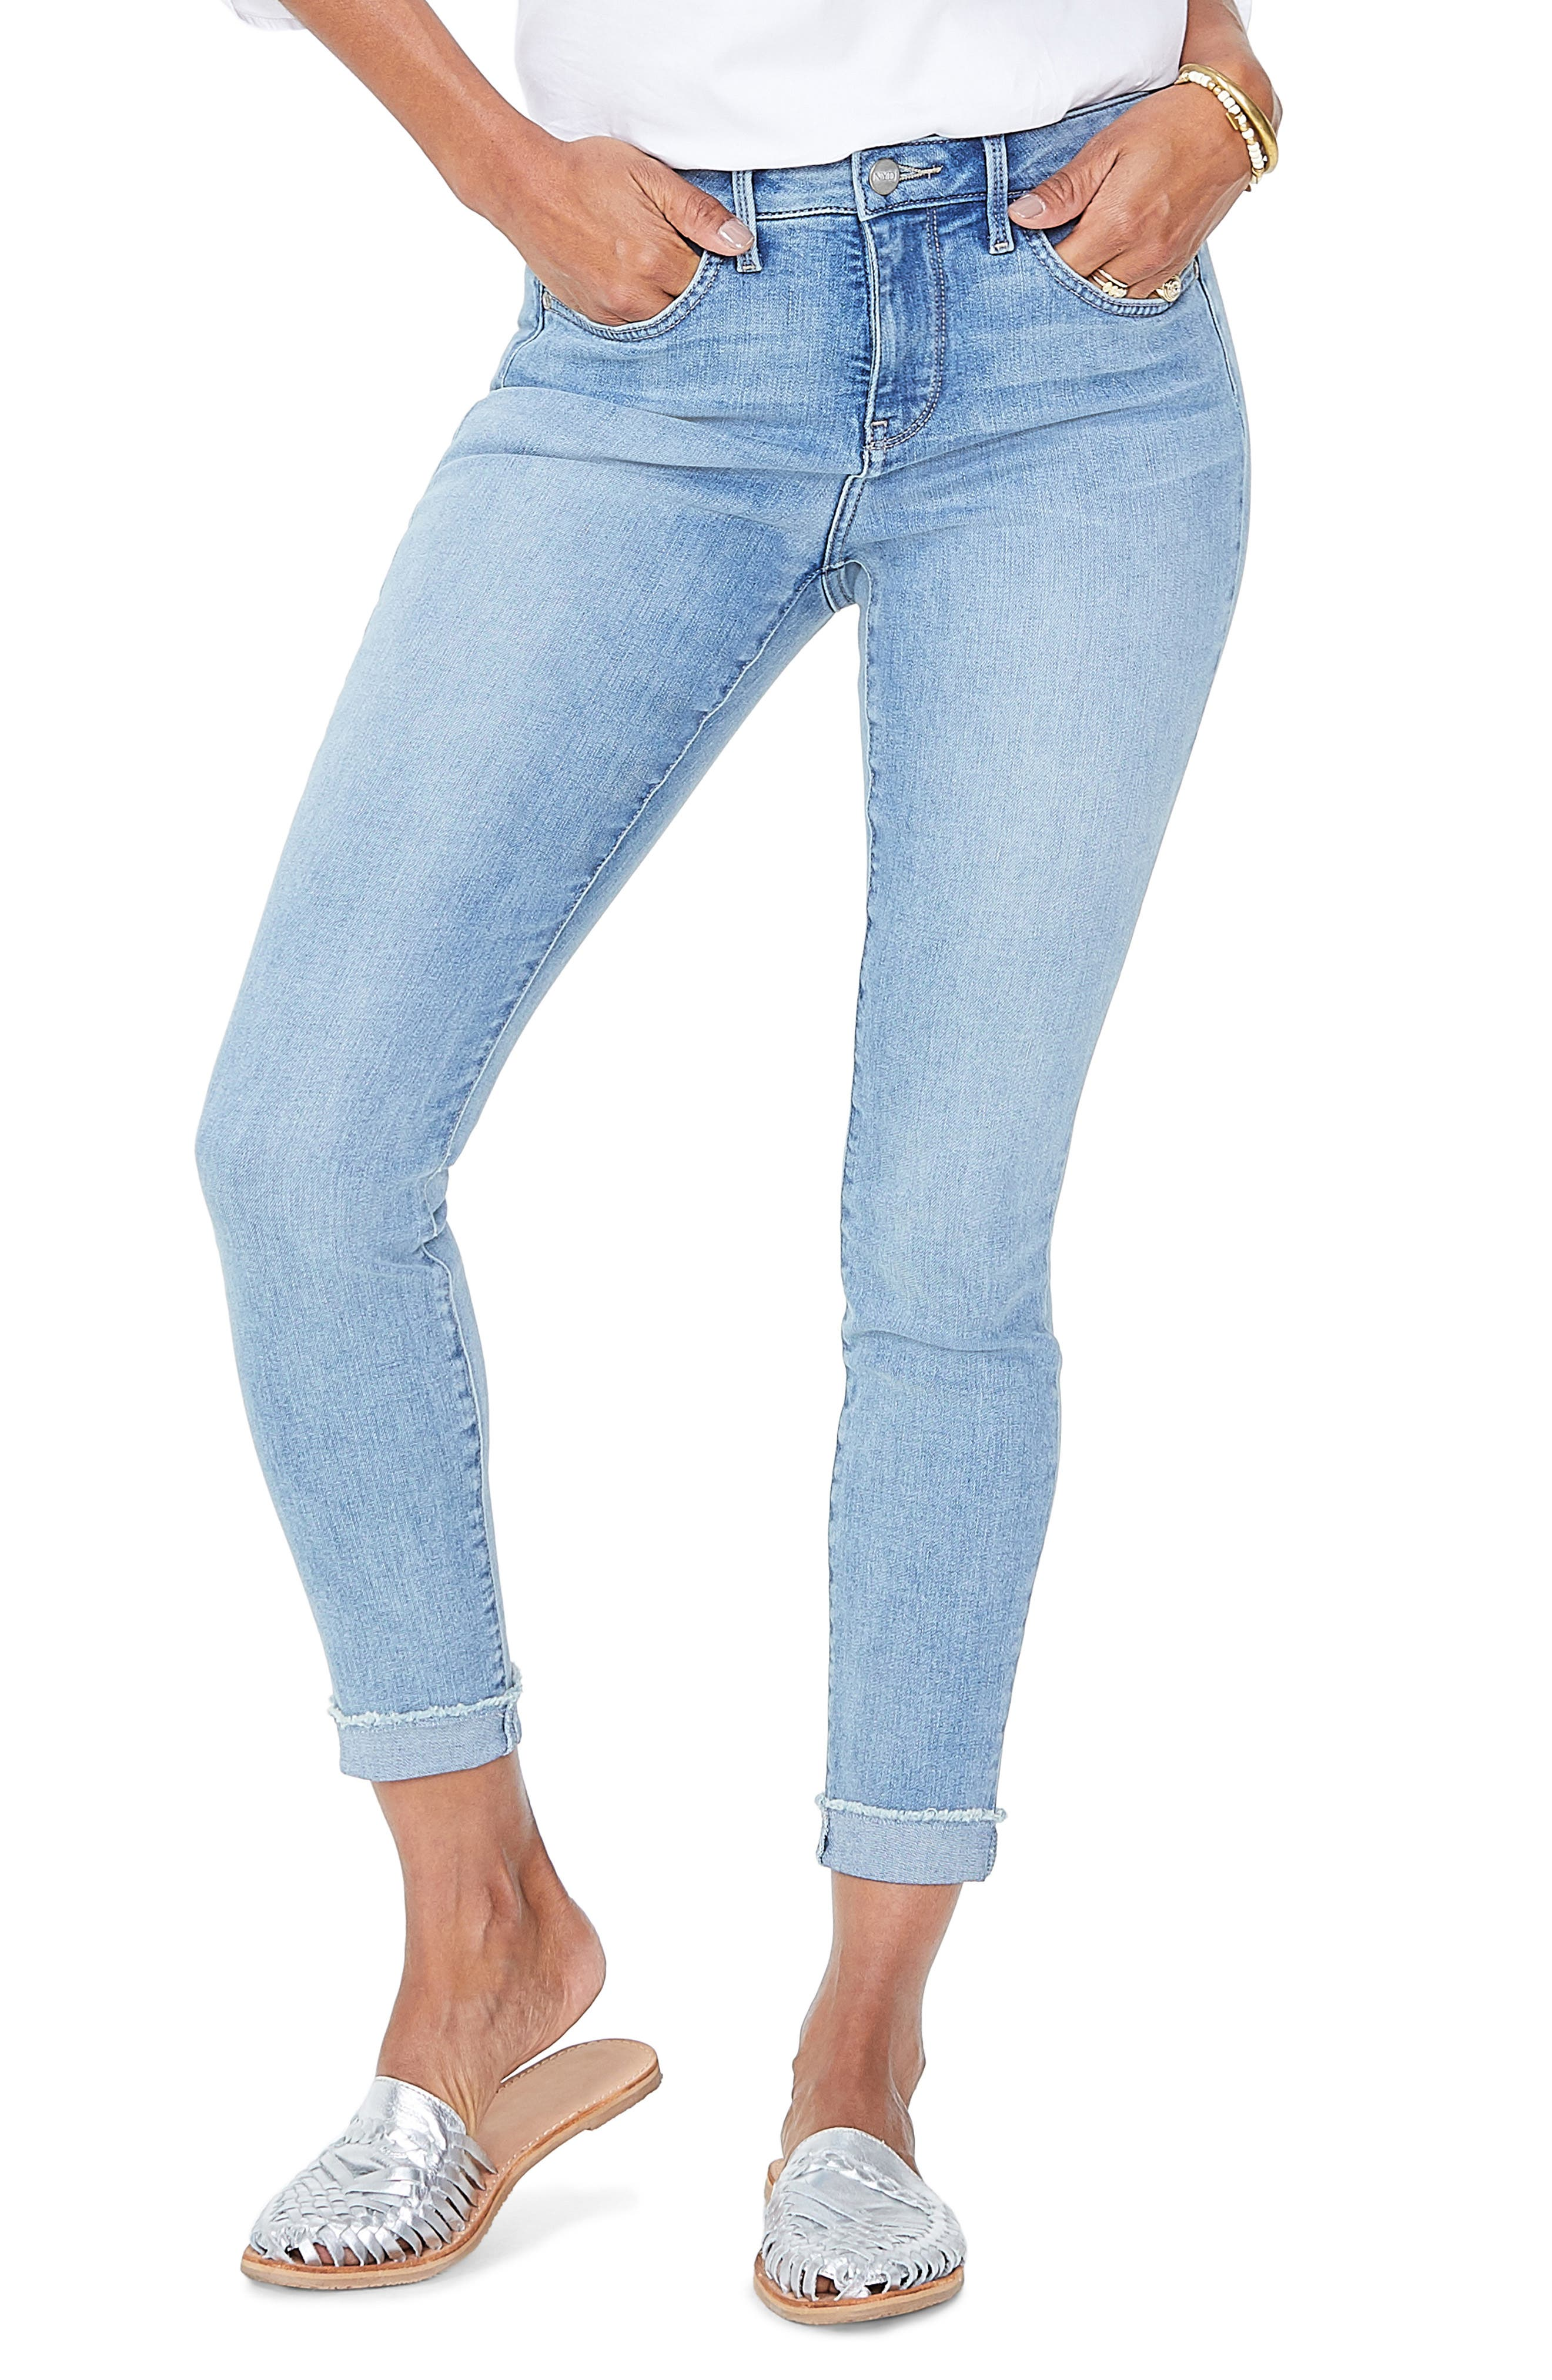 Ami Cuffed Ankle Skinny Jeans, Main, color, DREAMSTATE